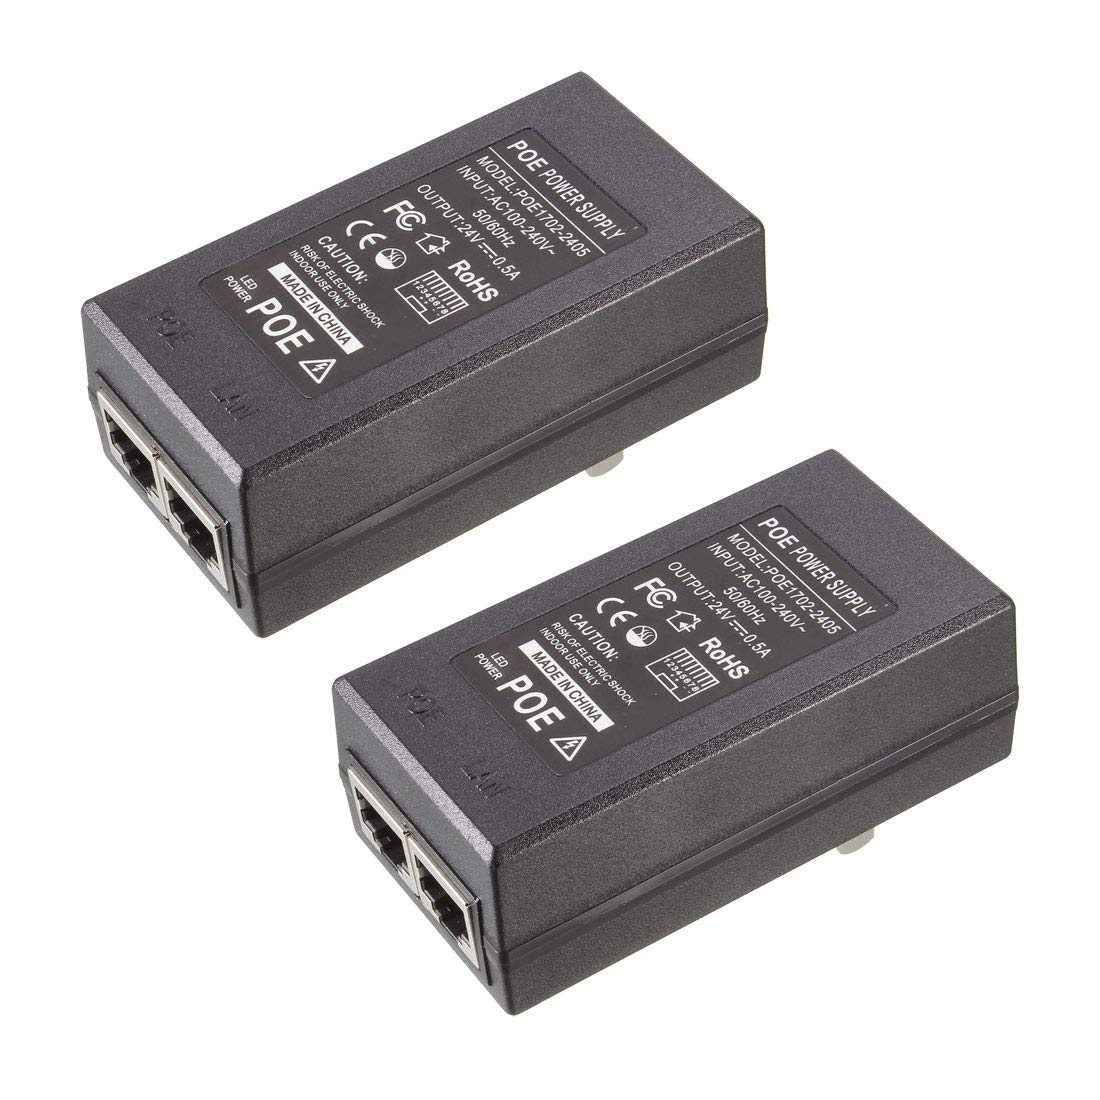 uxcell 2pcs 24v 0.5a Poe Max 75% OFF Large discharge sale Ethern Power Injector Supply Over